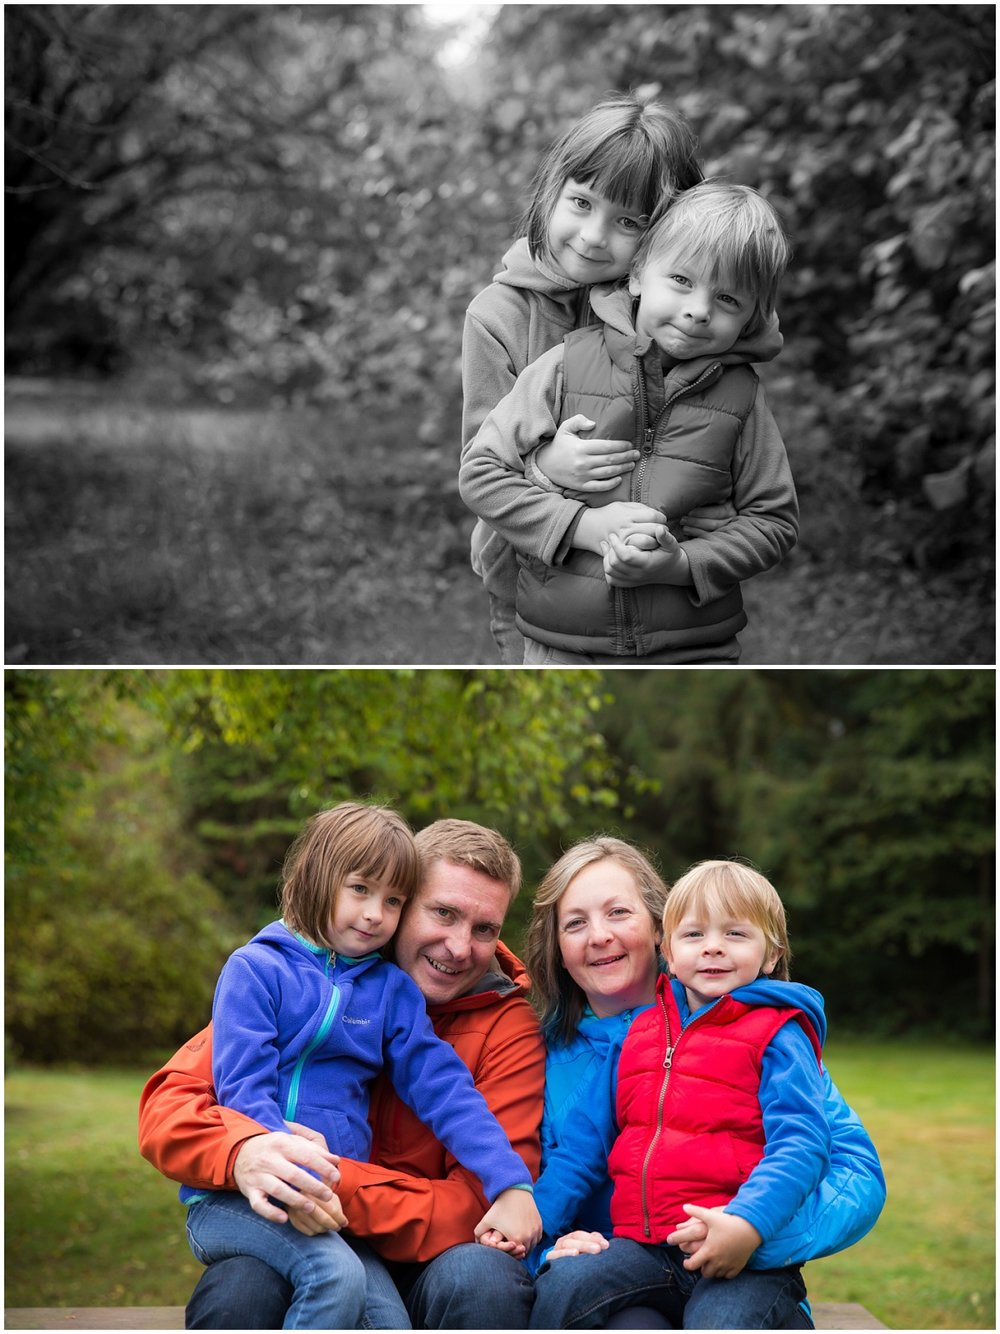 Amazing Day Photography - Fall Mini Sessions - Derby Reach Family Photos - Langley Family Photographer (1).jpg